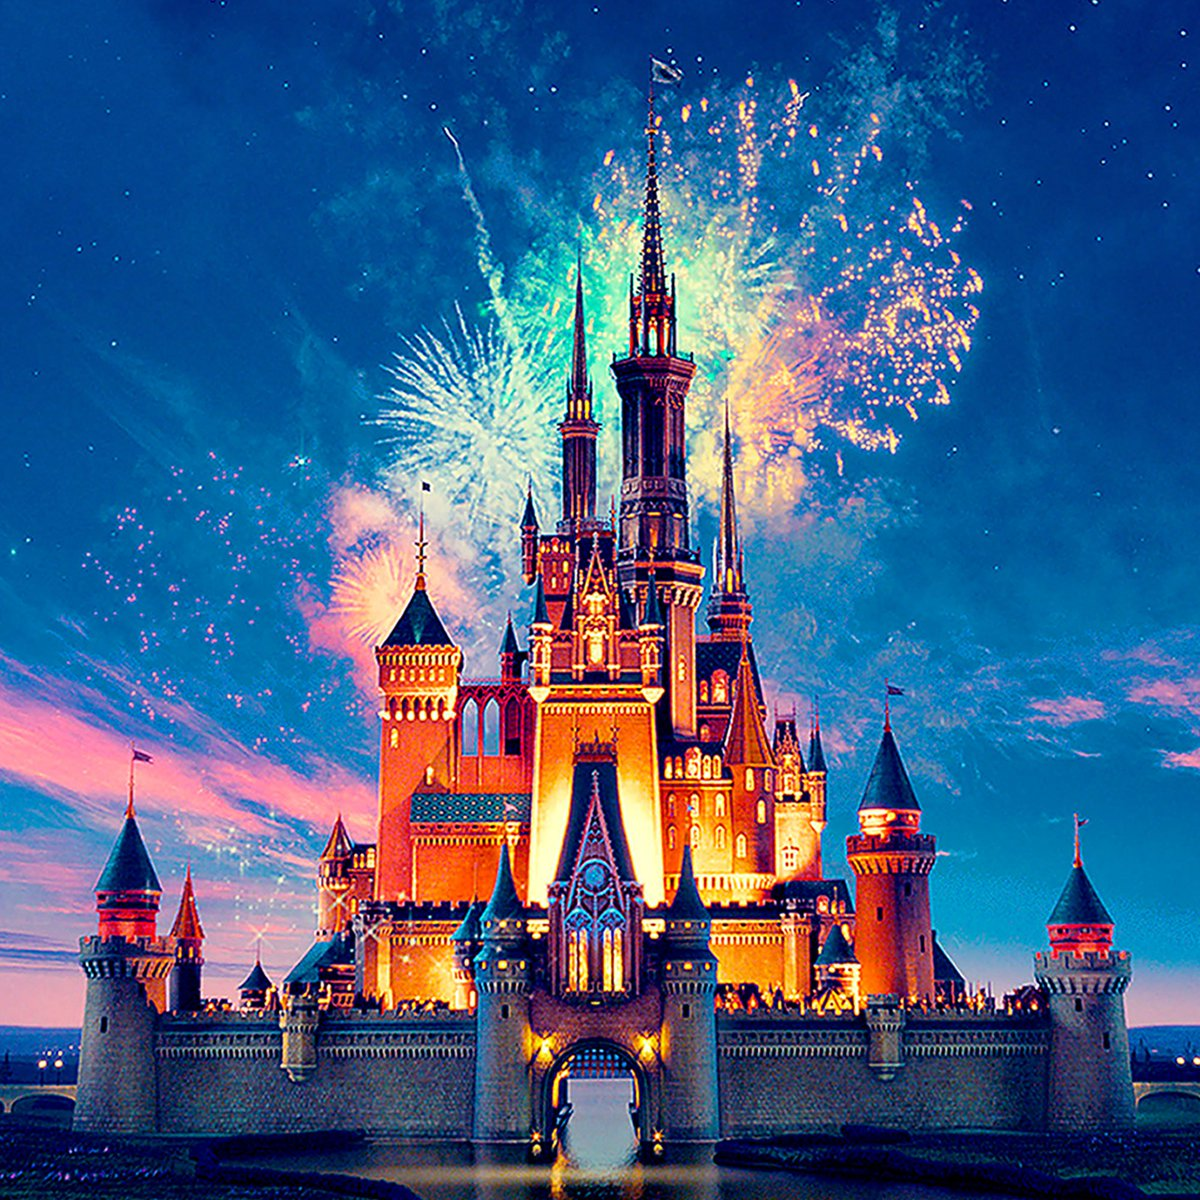 Disney Music On Twitter Just Launched Experience The Musical Magic Of Disney Marvel Star Wars Pixar And More With The First Of Its Kind Disney Hub On Spotify Search Disney And You Ll